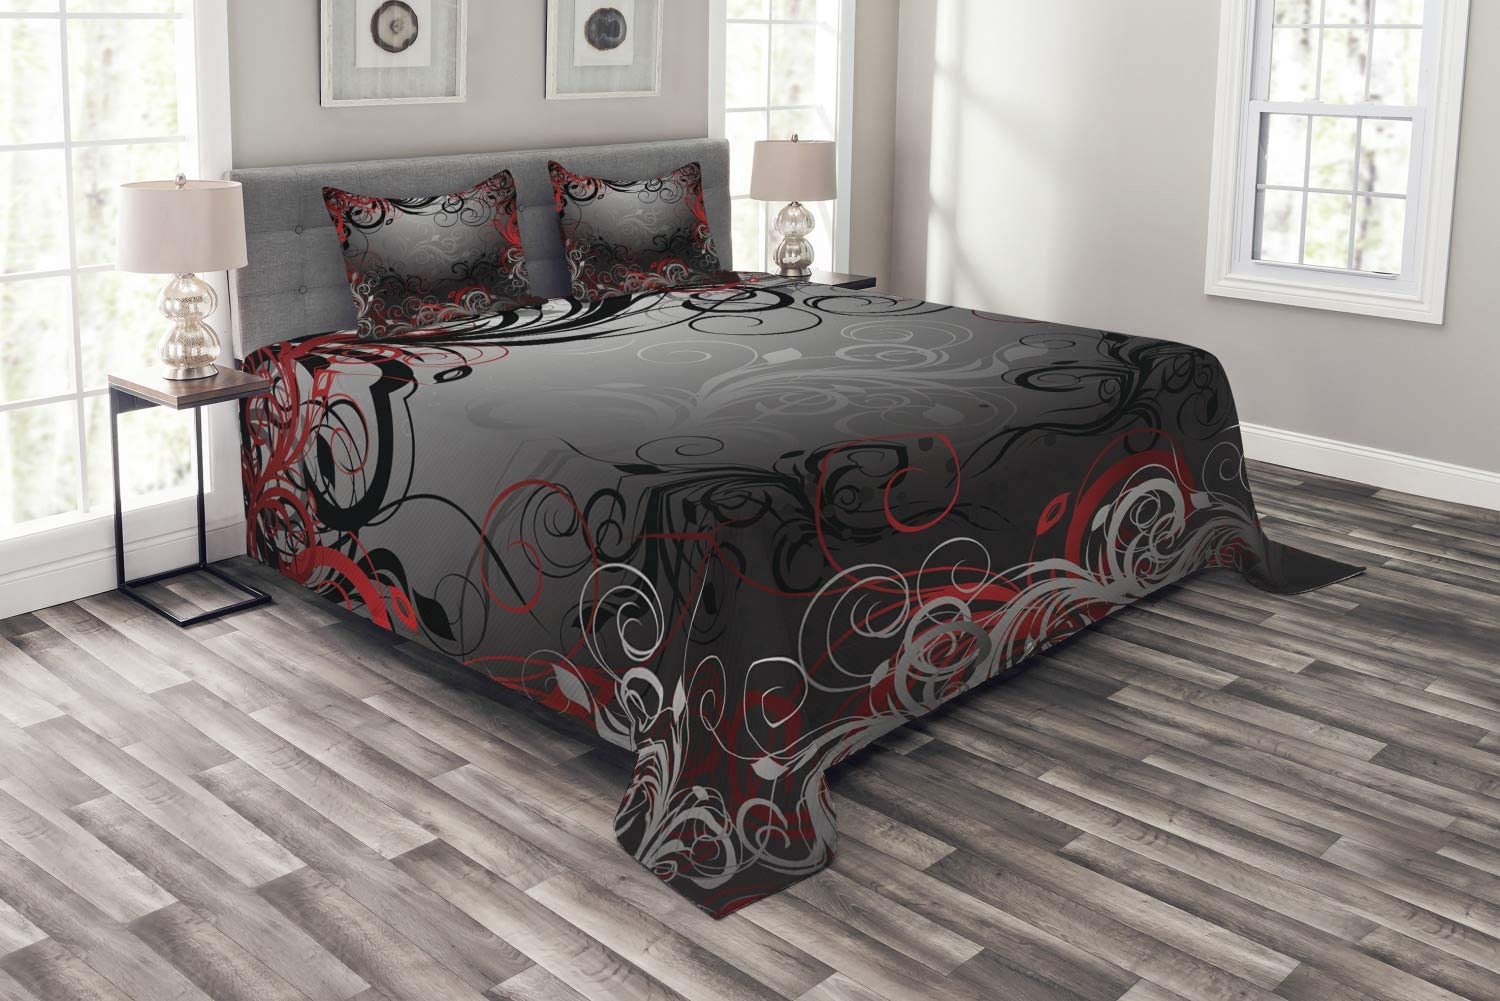 Lunarable Abstract Bedspread, Mystic Forest Floral Swirls Leaves Nature Fading Ombre Effect, Decorative Quilted 3 Piece Coverlet Set with 2 Pillow Shams, Queen Size, Charcoal Grey